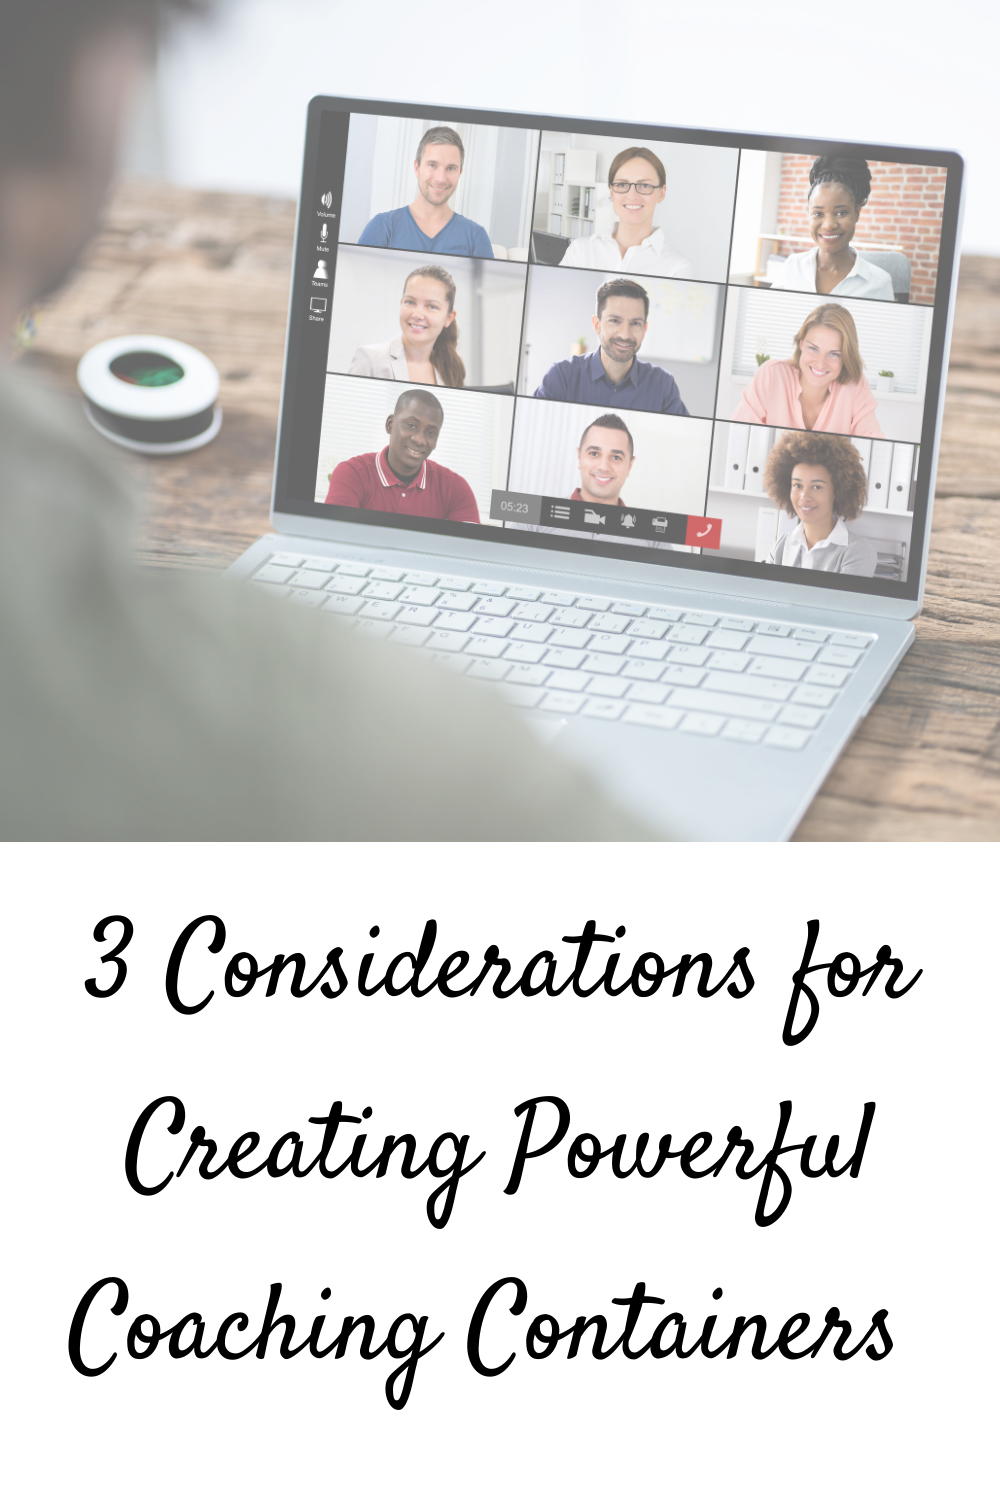 3 Considerations for Creating Powerful Coaching Containers